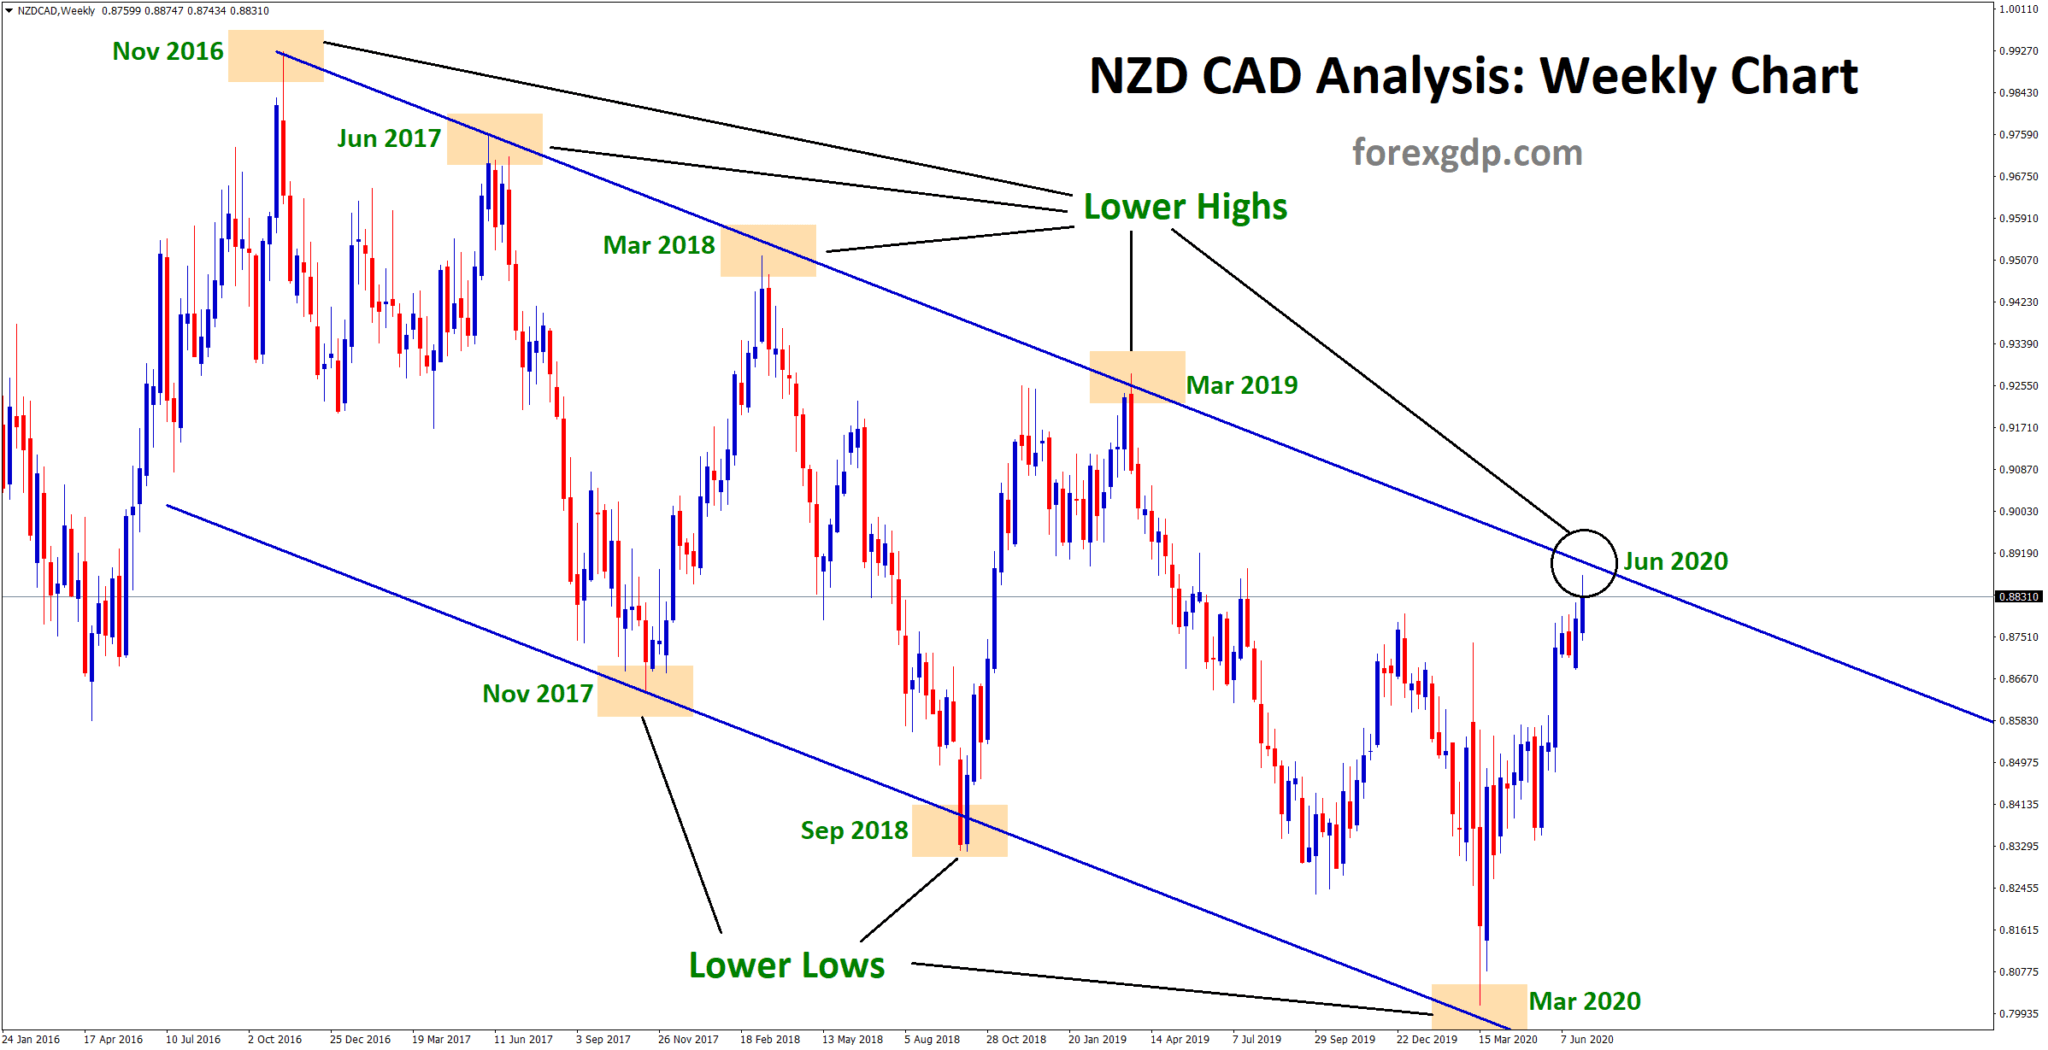 nzdcad down trend line analysis in weekly chart